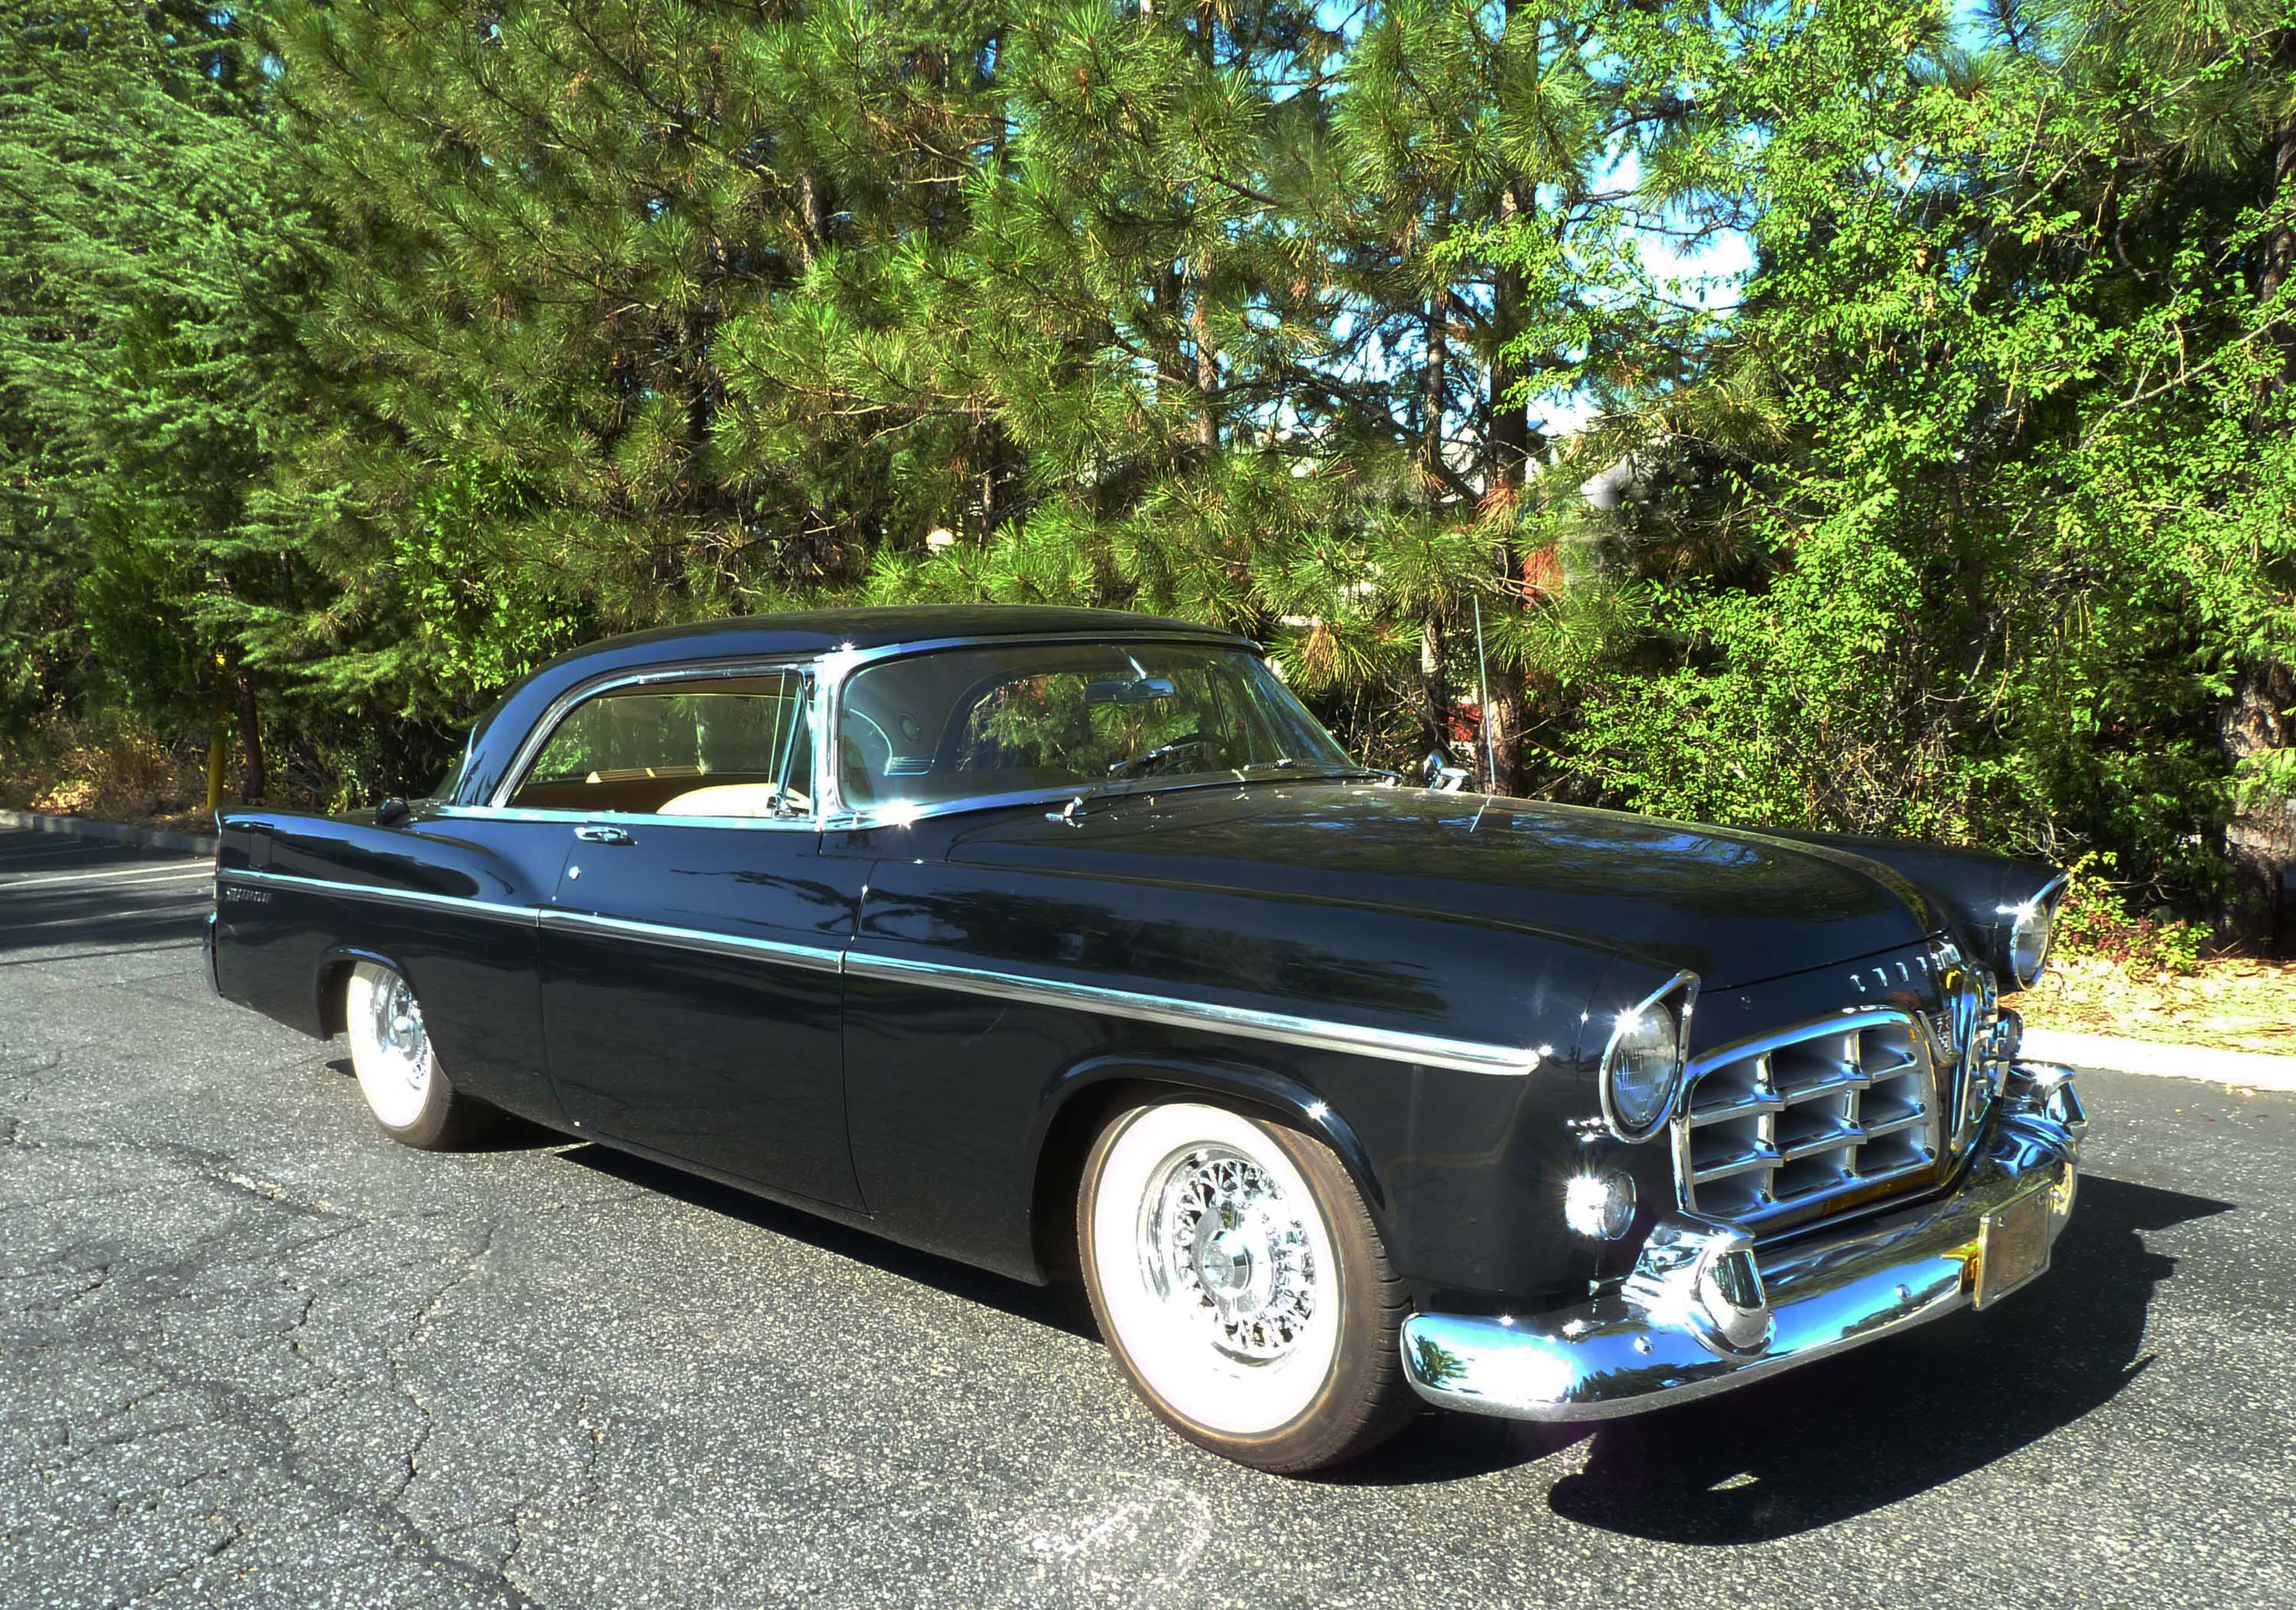 1956 was the second year for the 300 series Chrysler, with the first one  named